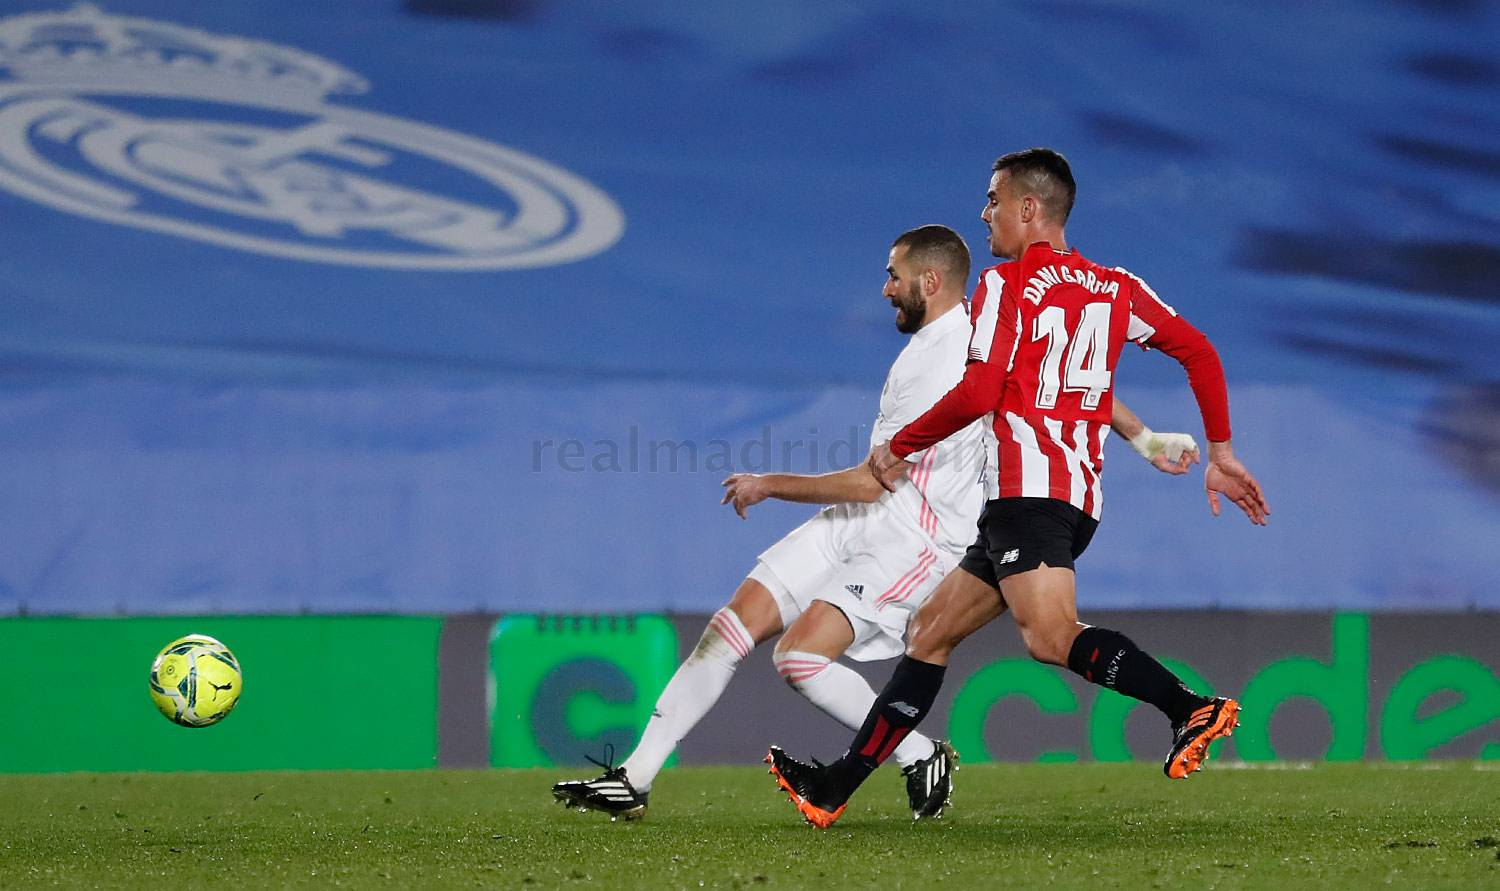 Real Madrid - Real Madrid - Athletic Club - 16-12-2020